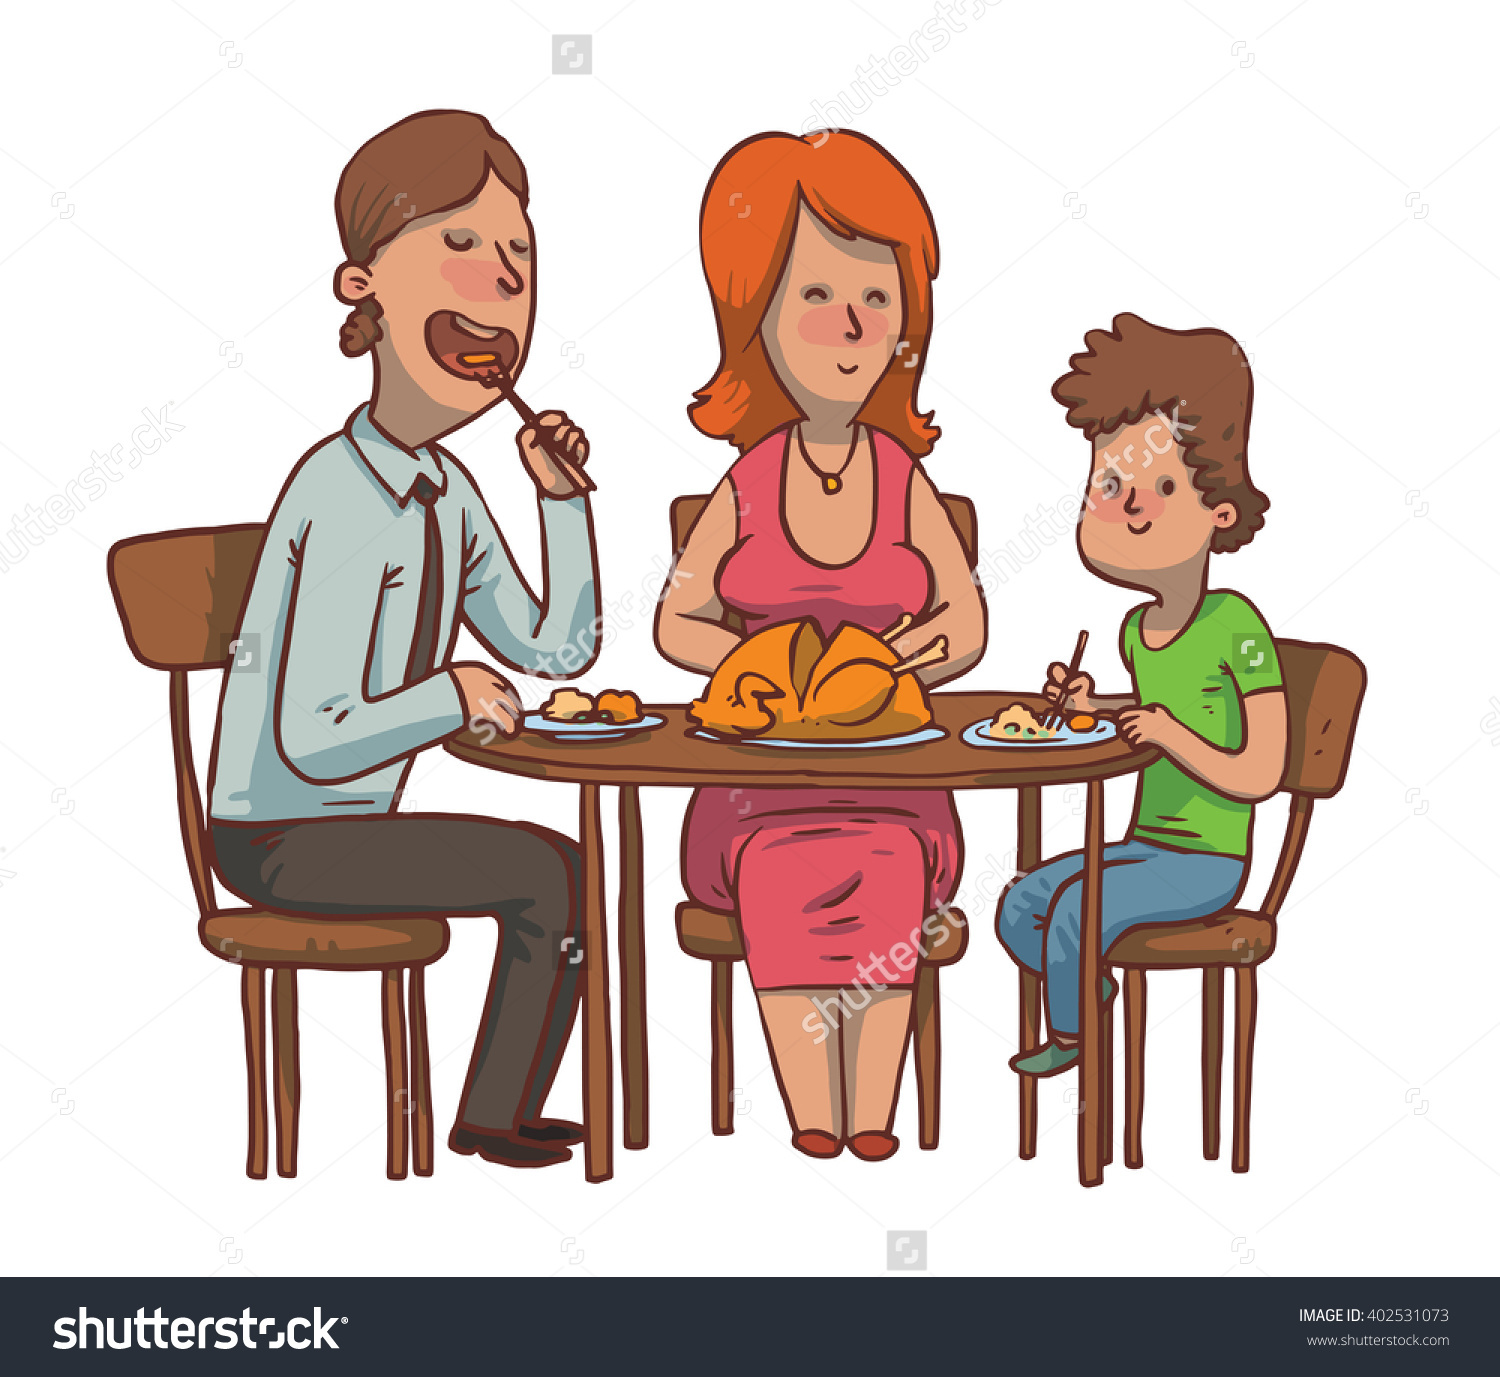 Vector Cartoon Image Family Dinner Father Stock 402531073